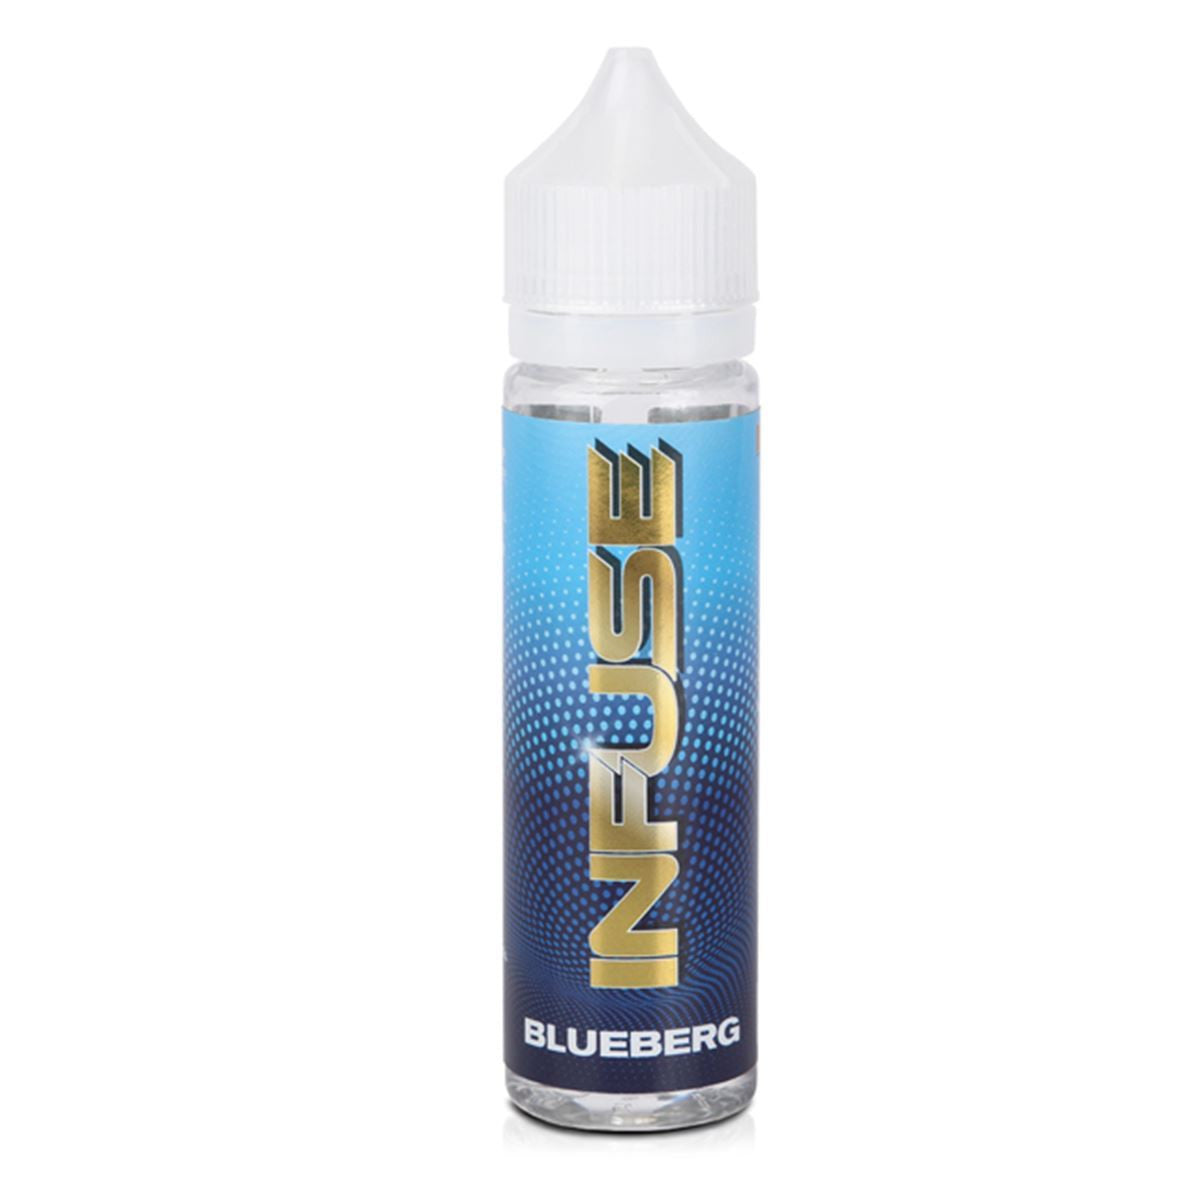 Blue Berg Eliquid By Infuse